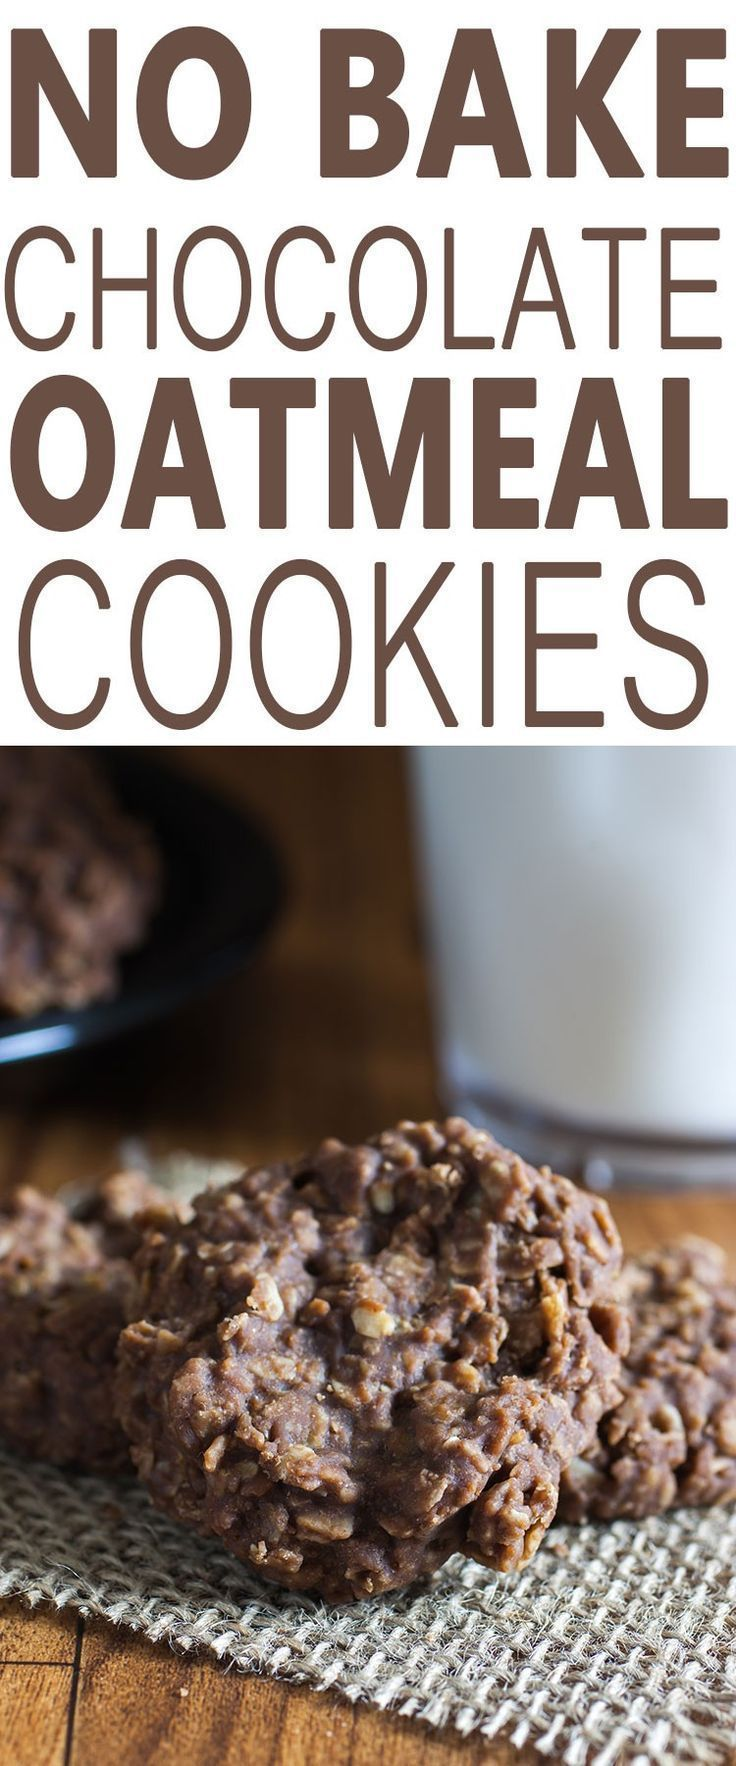 Cookies Peanut Butter Oatmeal Chocolate